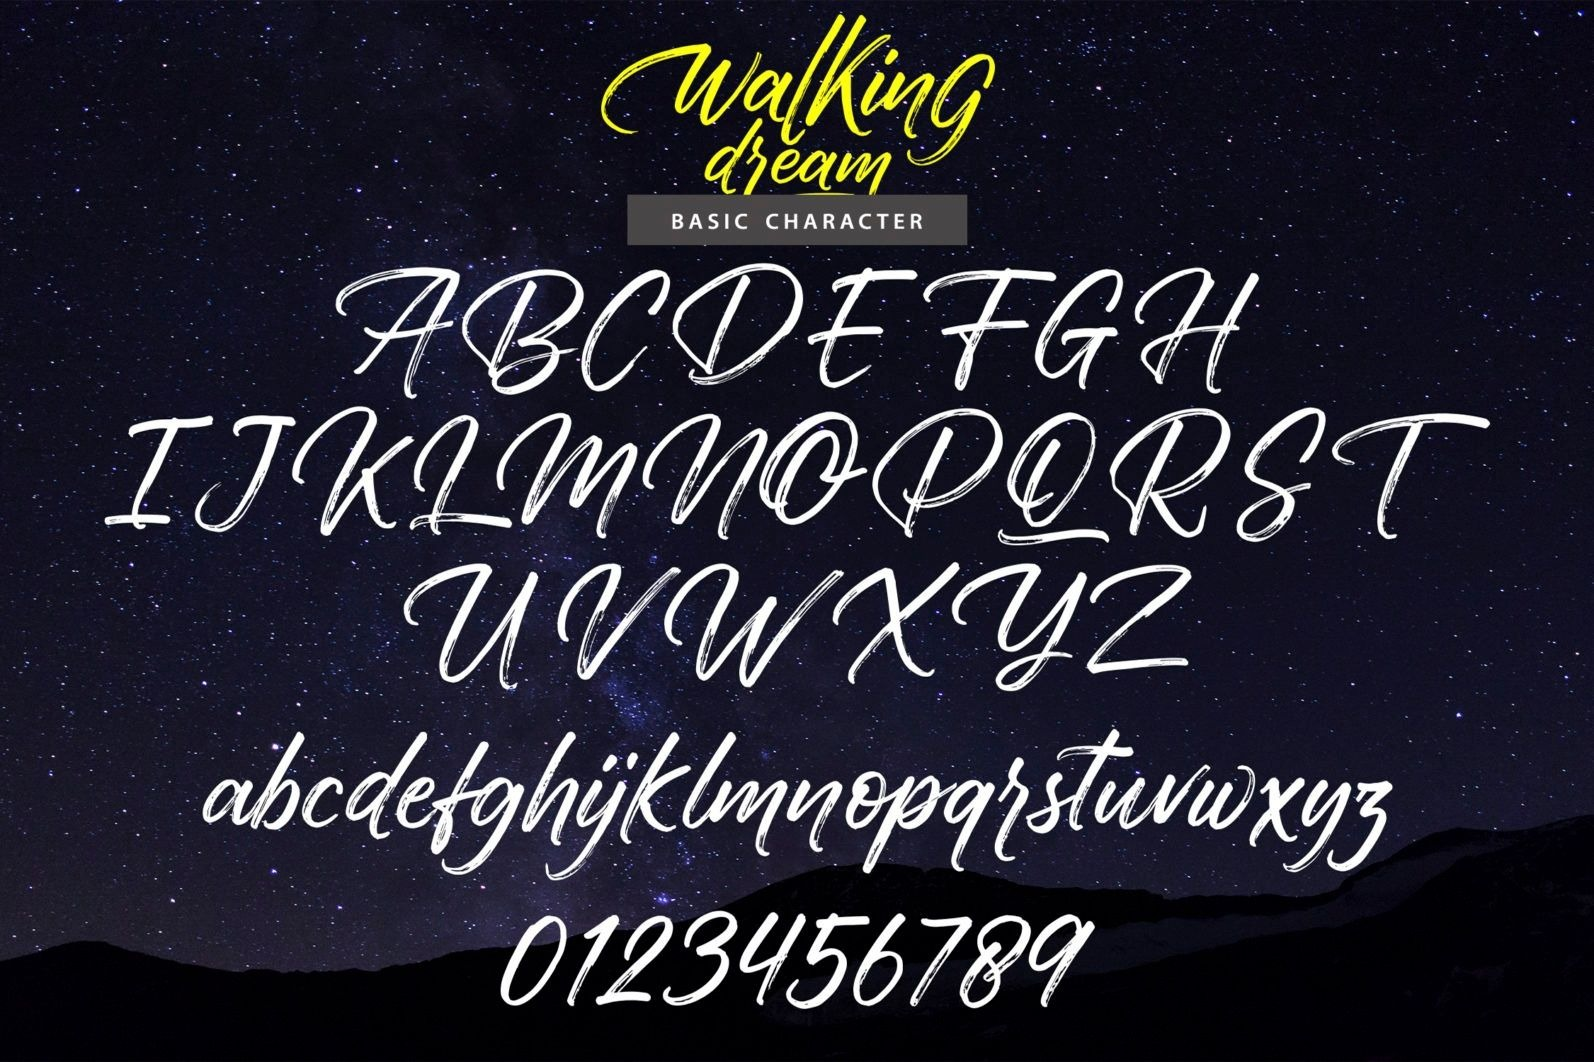 Walking Dream A Handcrafted Drybrush Lettering Font-3